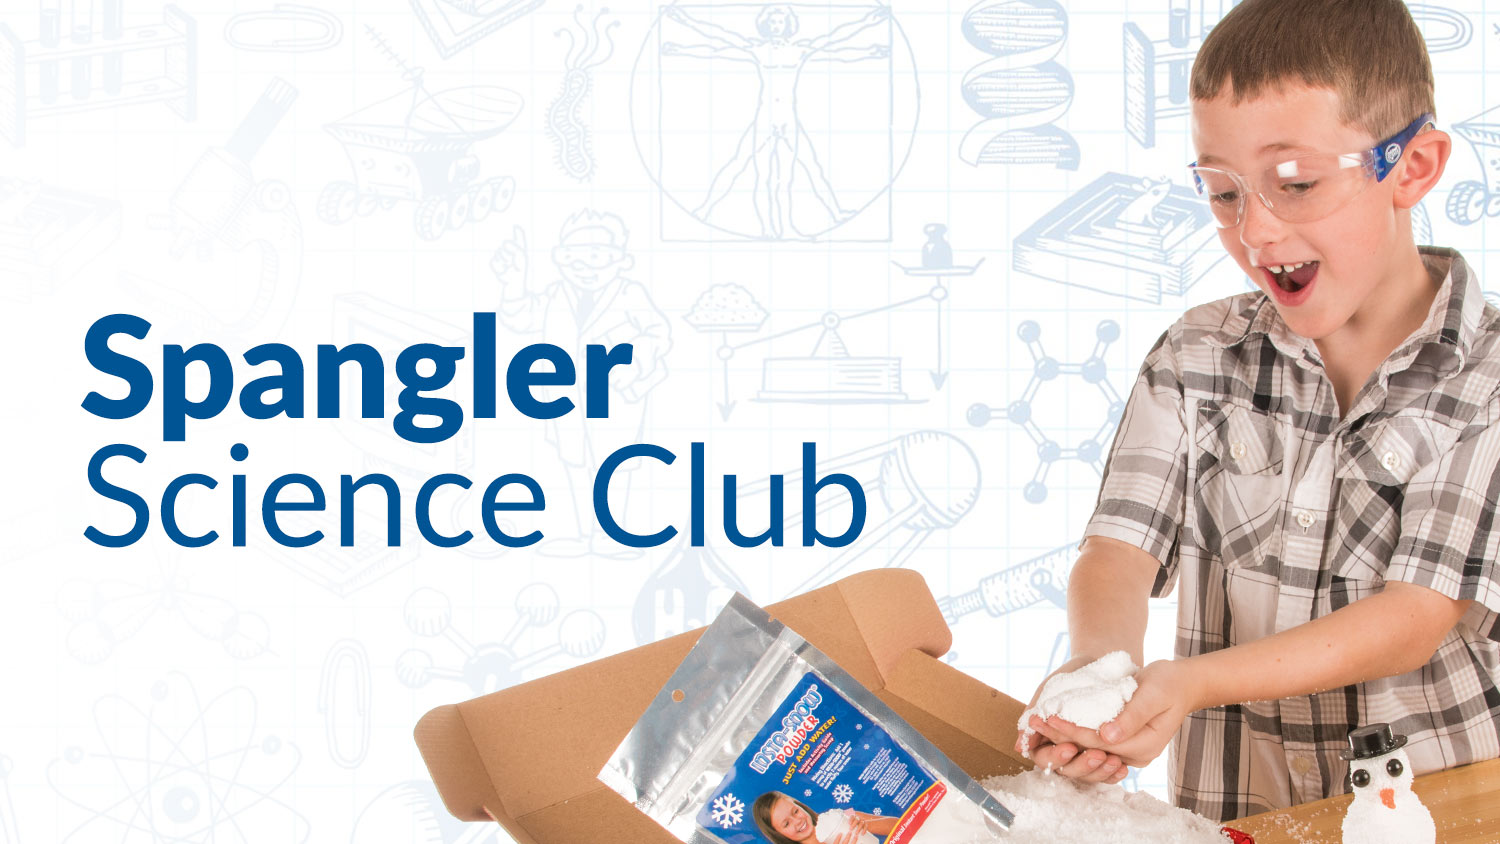 Spangler Science Club